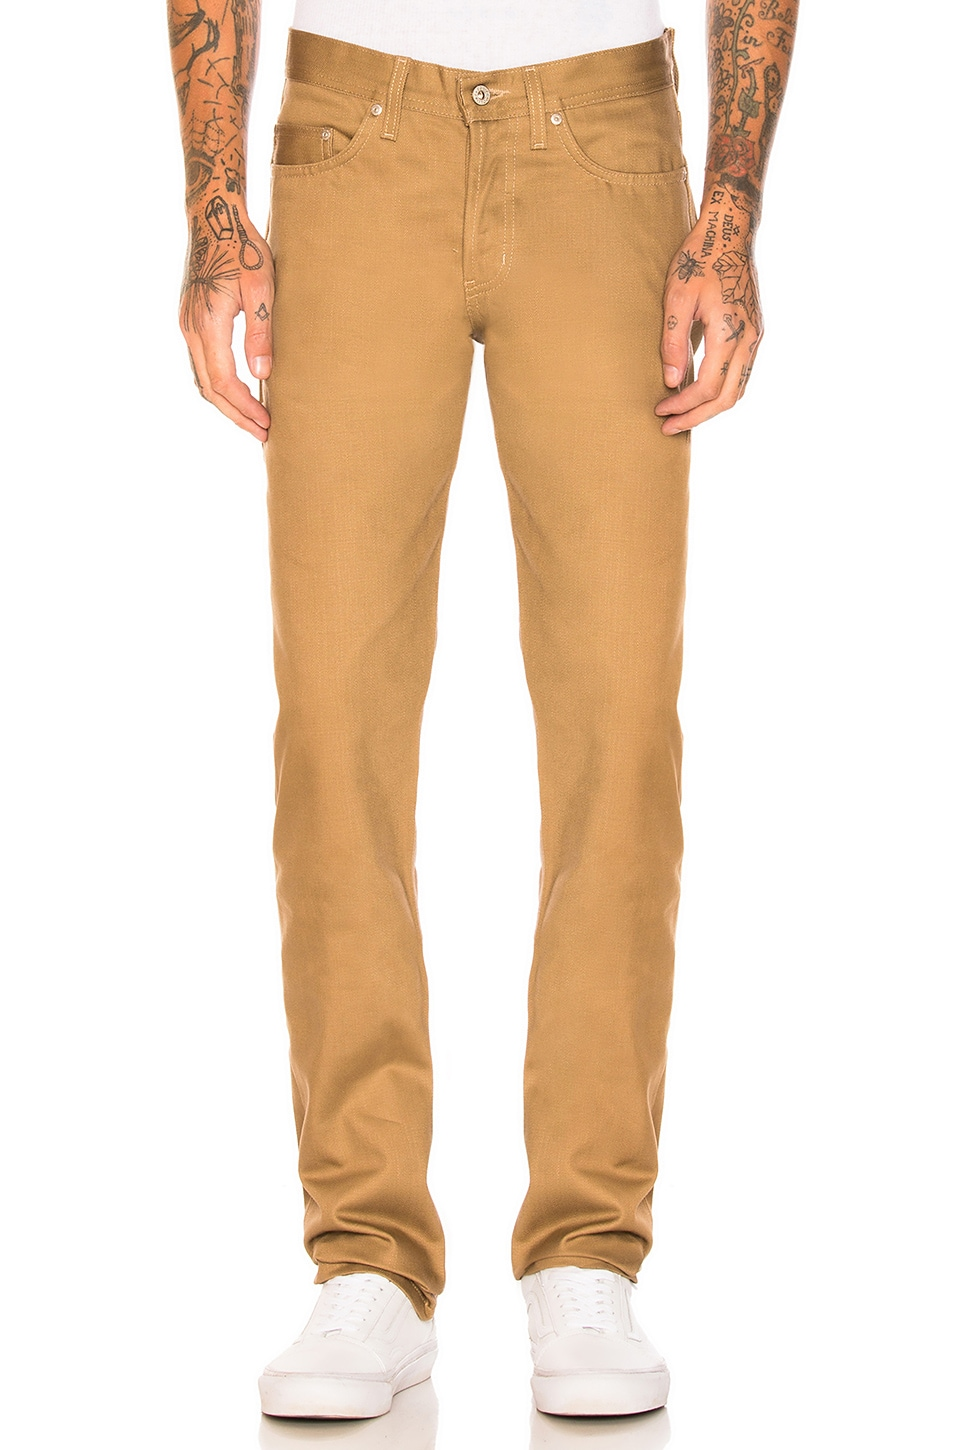 Naked & Famous Denim Weird Guy Selvedge Chino in Tan